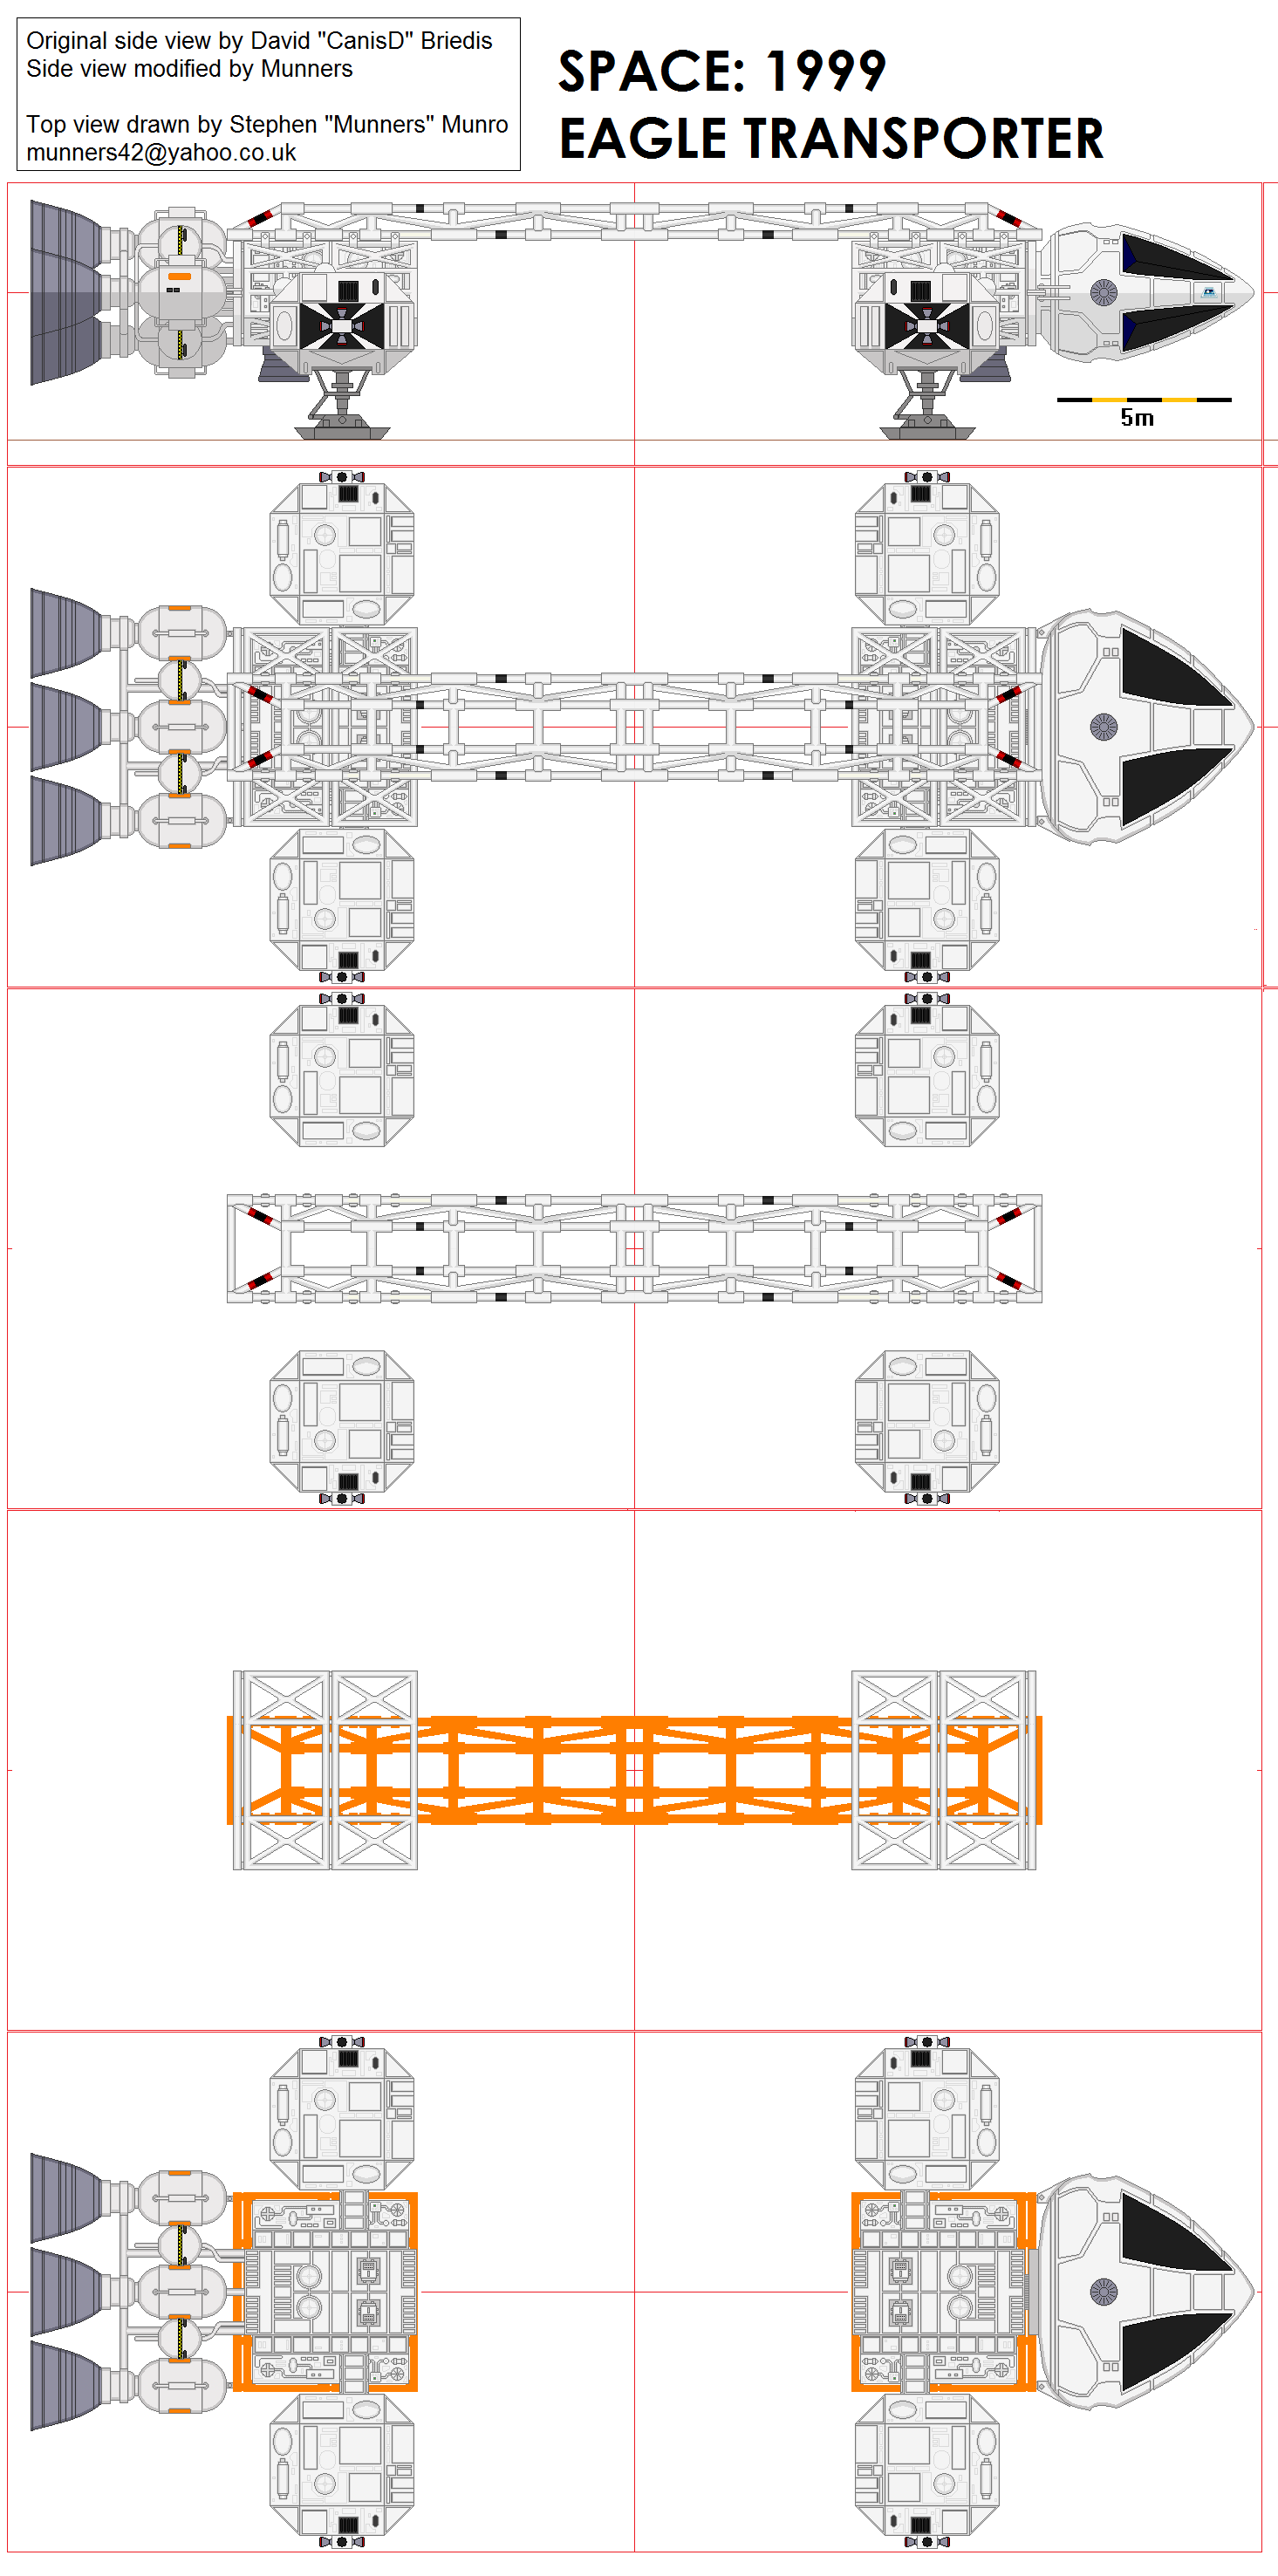 Space 1999 eagle blueprints by keith young detailed and carefully space 1999 eagle blueprints by keith young detailed and carefully researched this schematic shows eagle pod interior as a cross section malvernweather Gallery